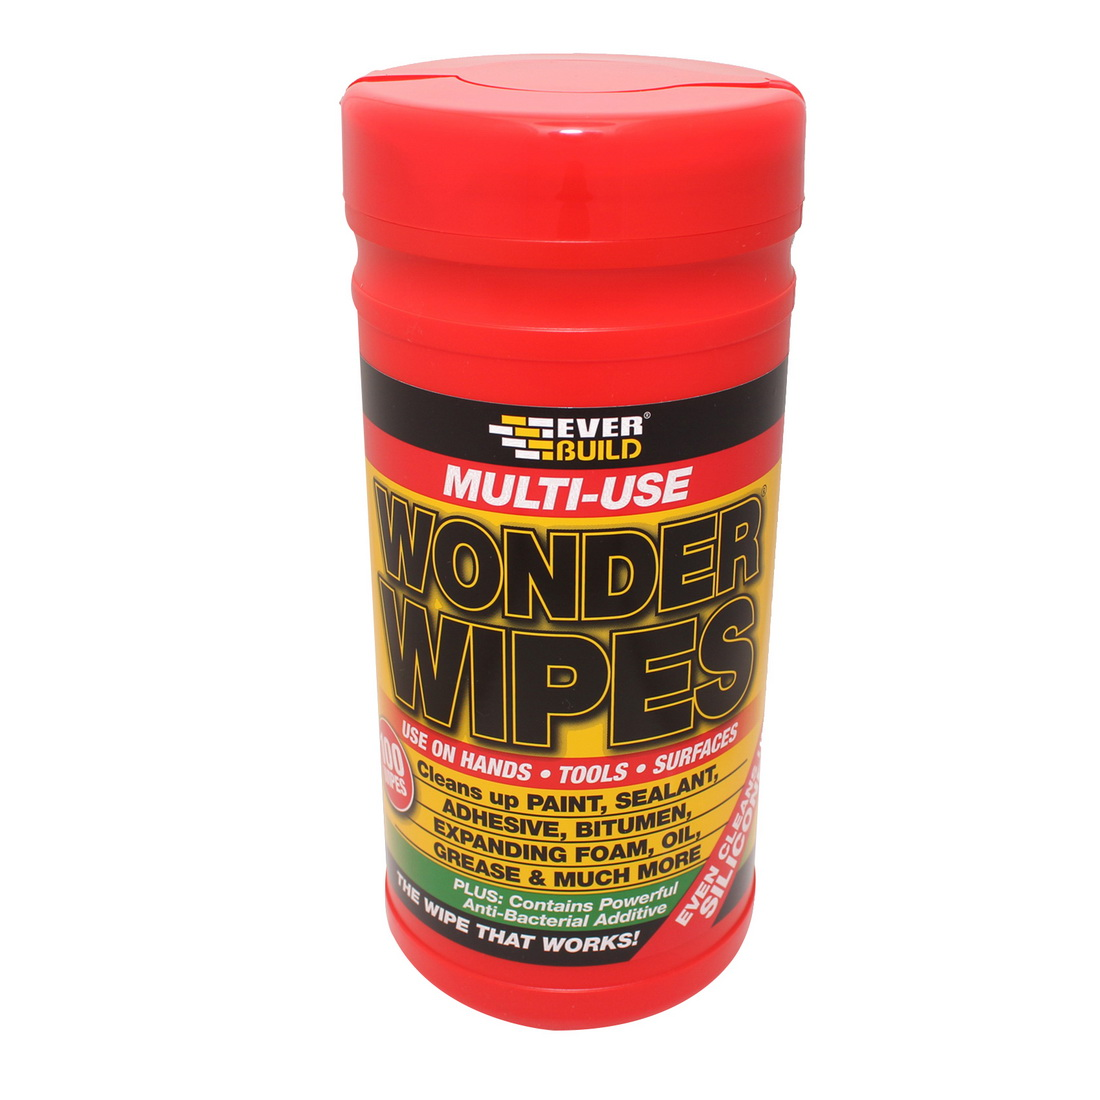 EVERBUILD WONDER WIPES Multi-Use Wonder Wipes 100 pack